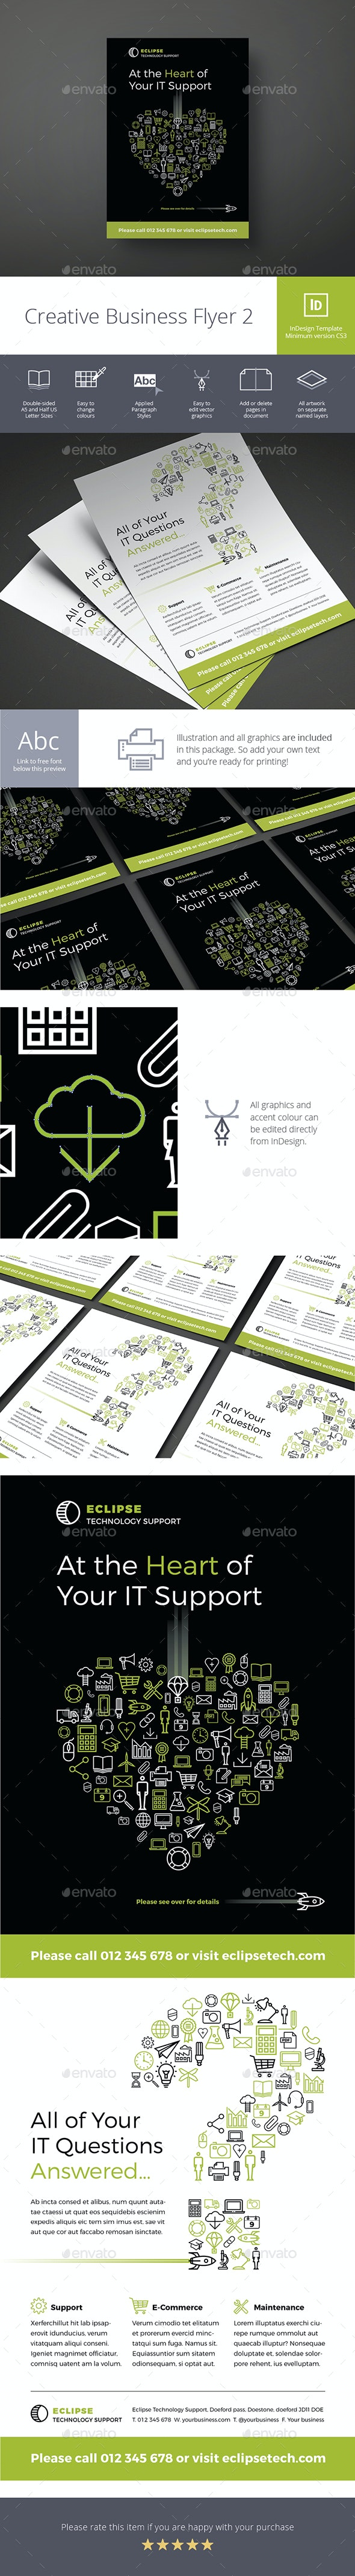 Creative Business Flyer 2 - Corporate Flyers